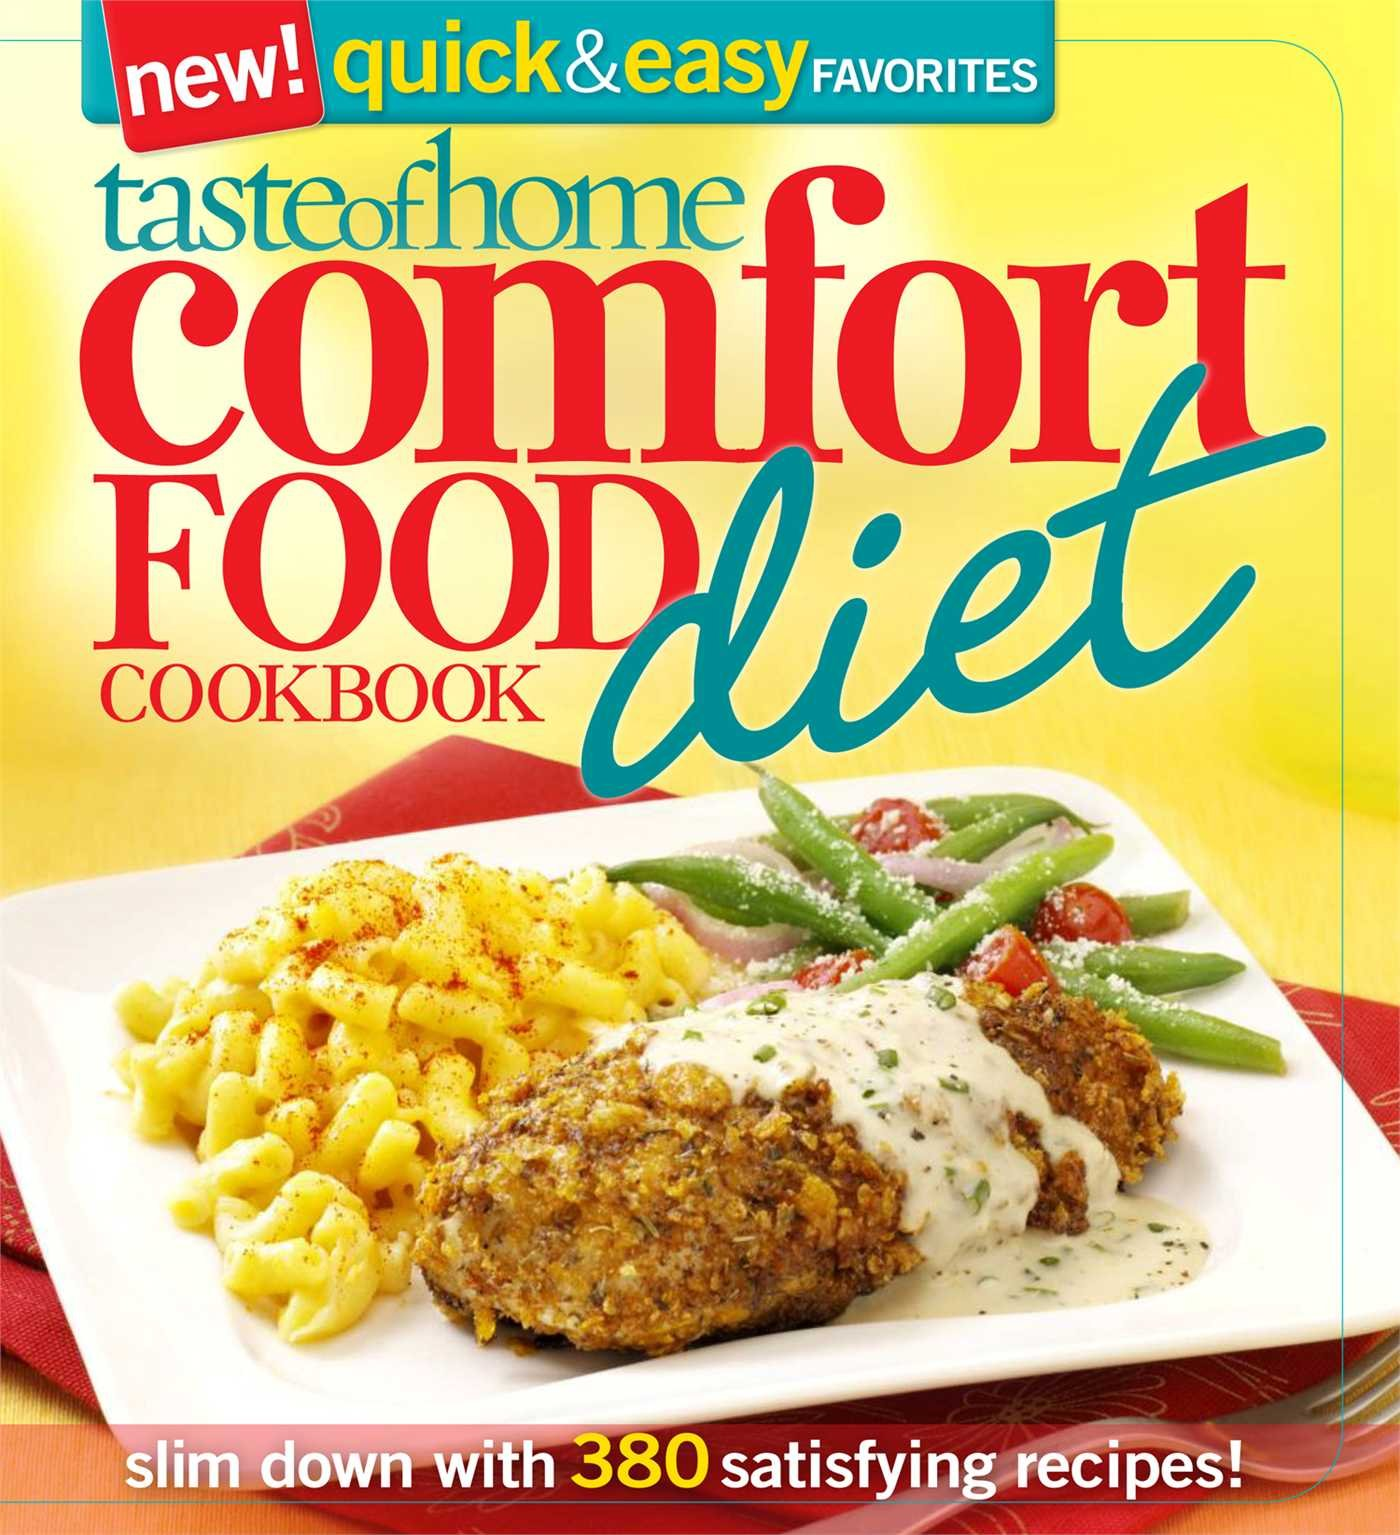 Taste of home comfort food diet cookbook new quick easy taste of home comfort food diet cookbook new quick easy favorites slim down with 380 satisfying recipes taste of home 9780898219104 amazon forumfinder Choice Image